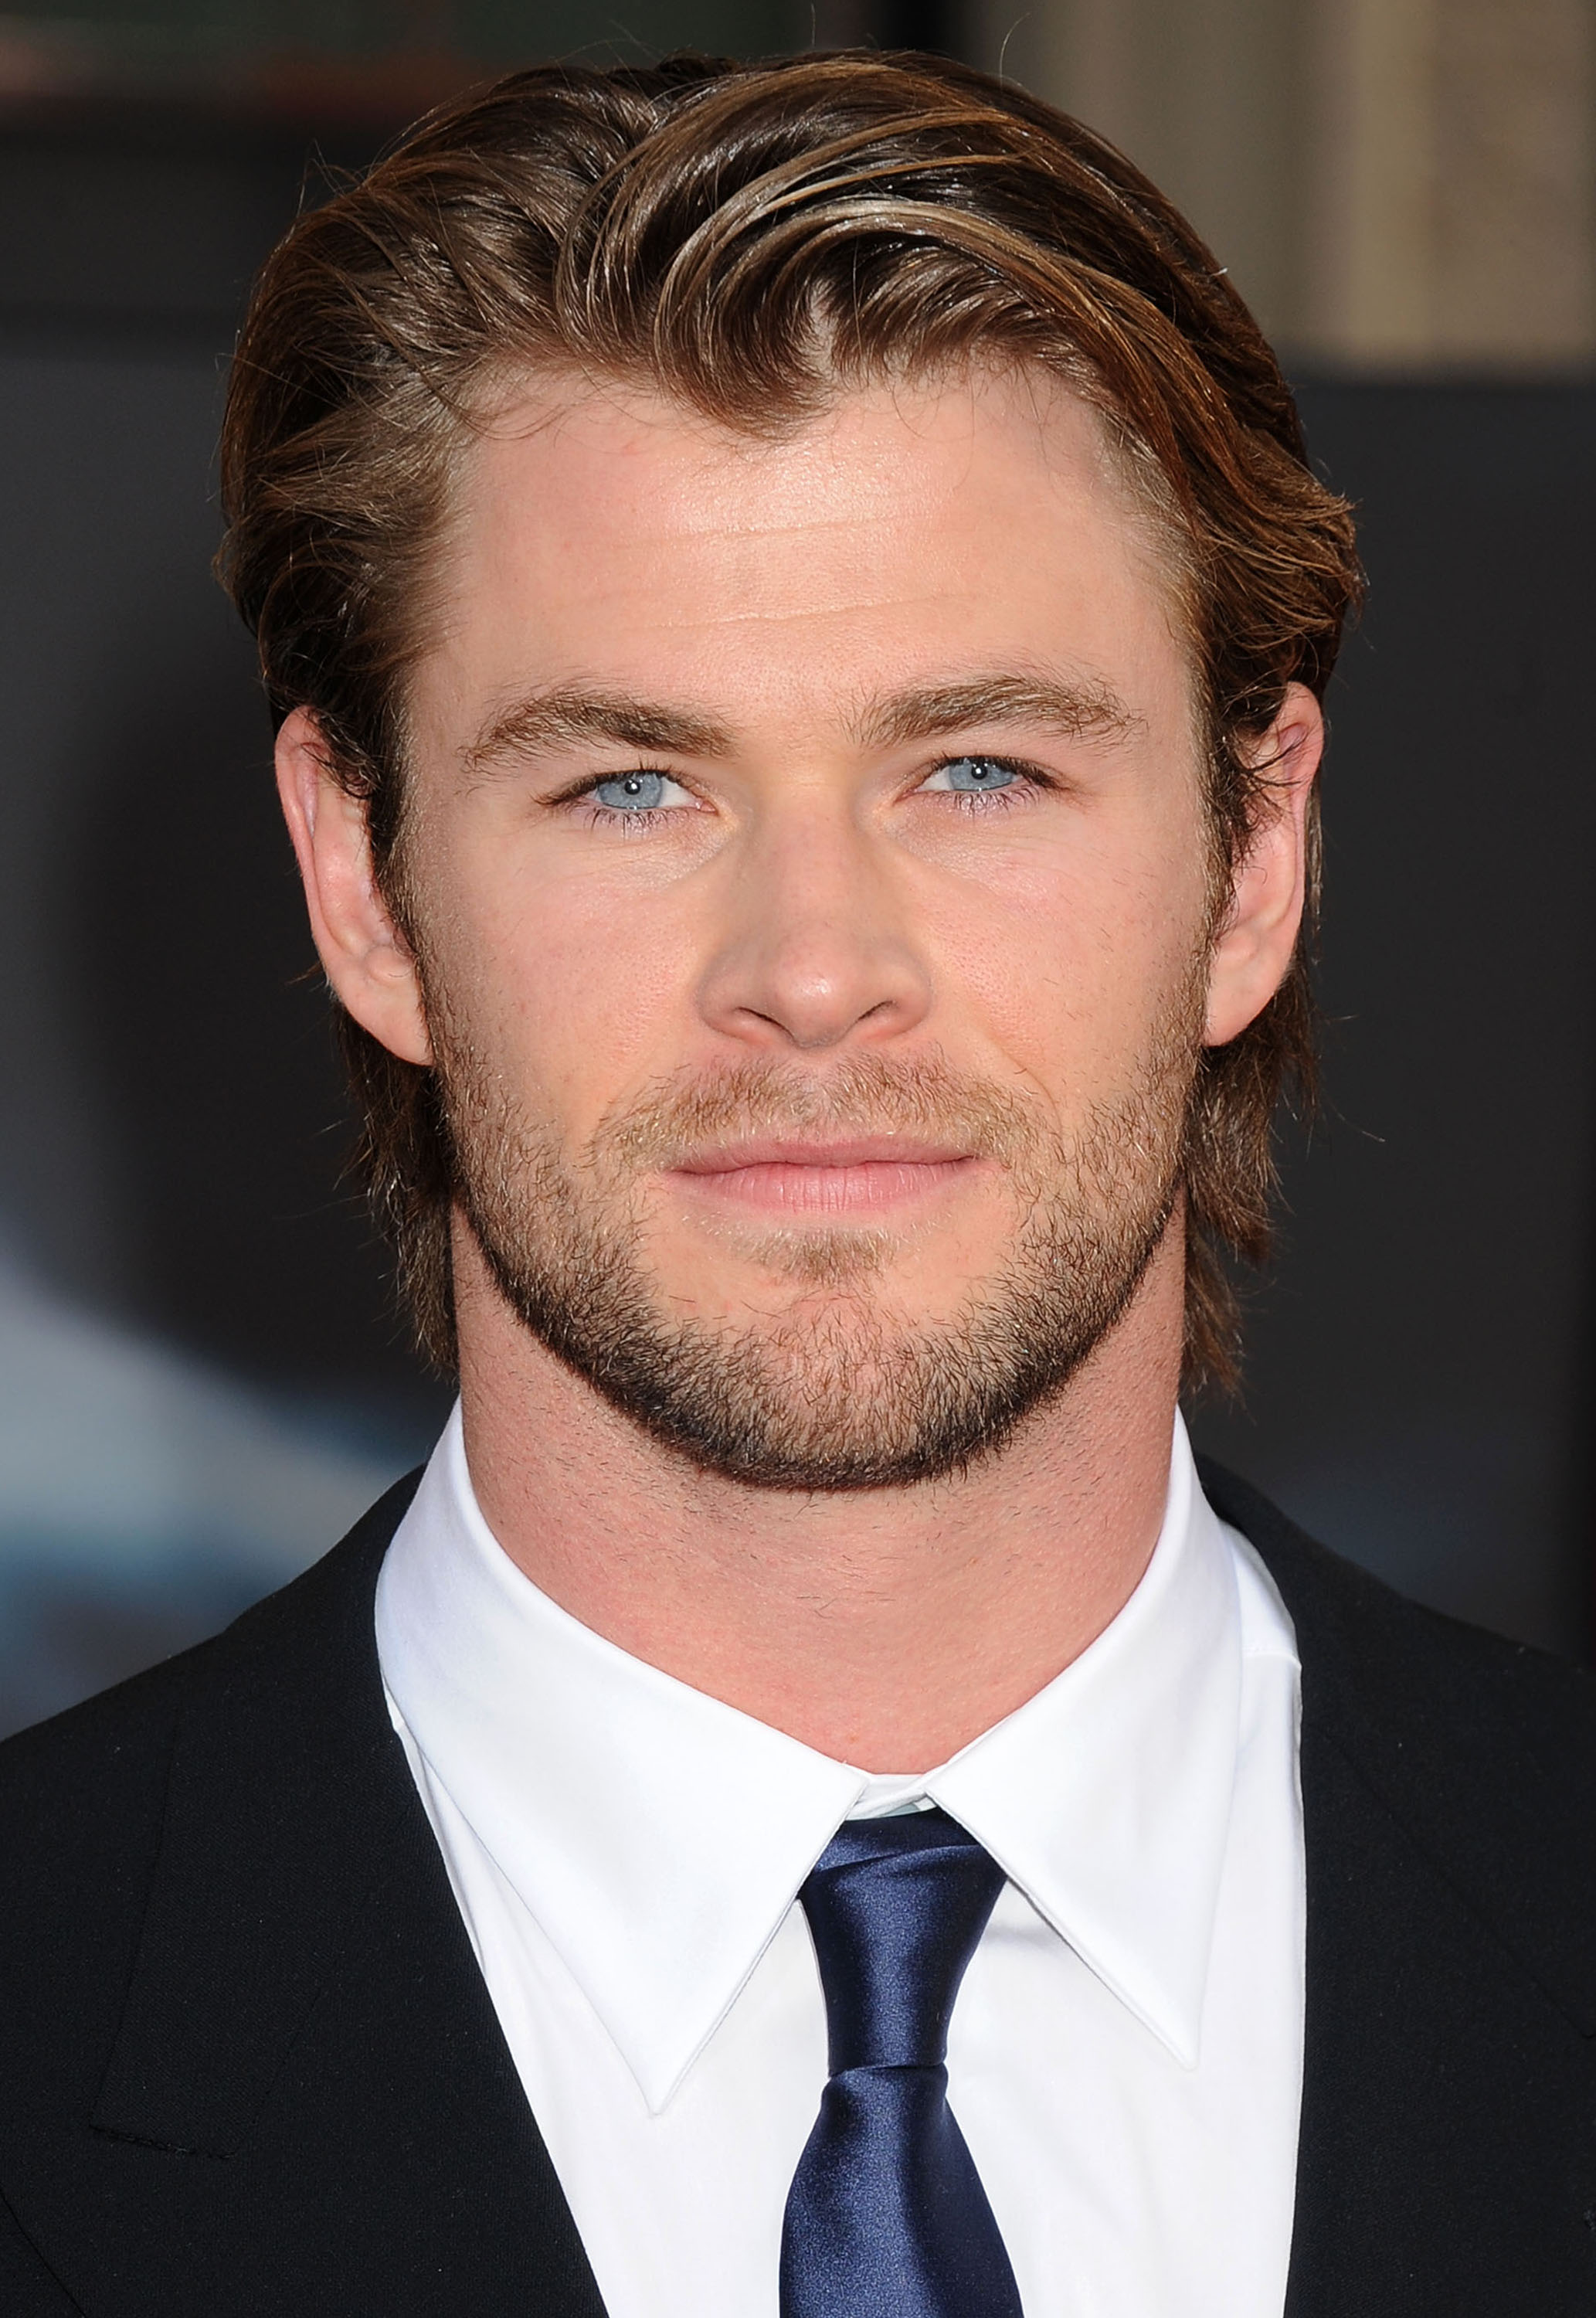 Chris hemsworth images hd full hd pictures - Chris hemsworth hd images ...